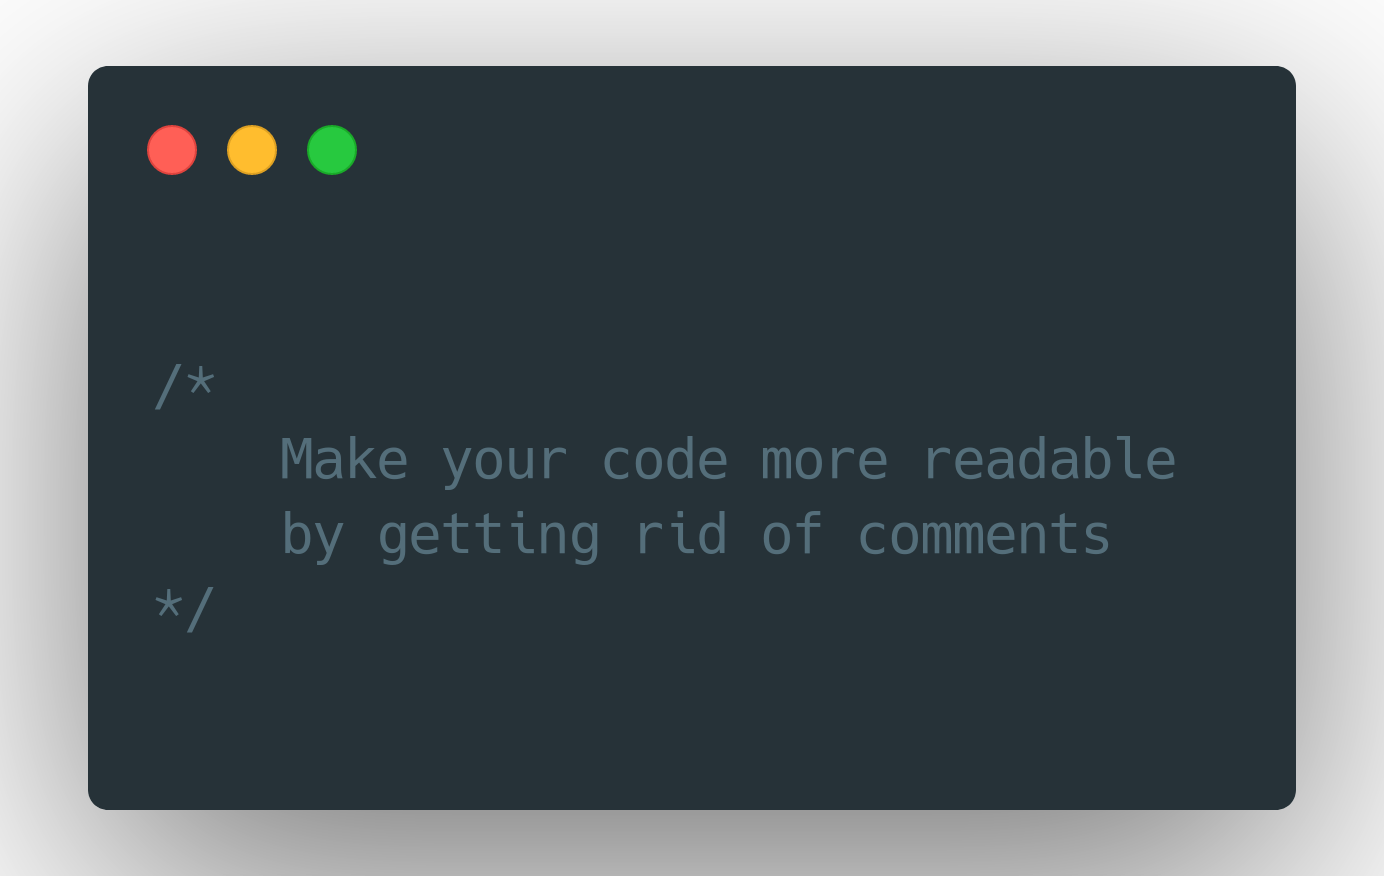 Improve code readability by getting rid of comments